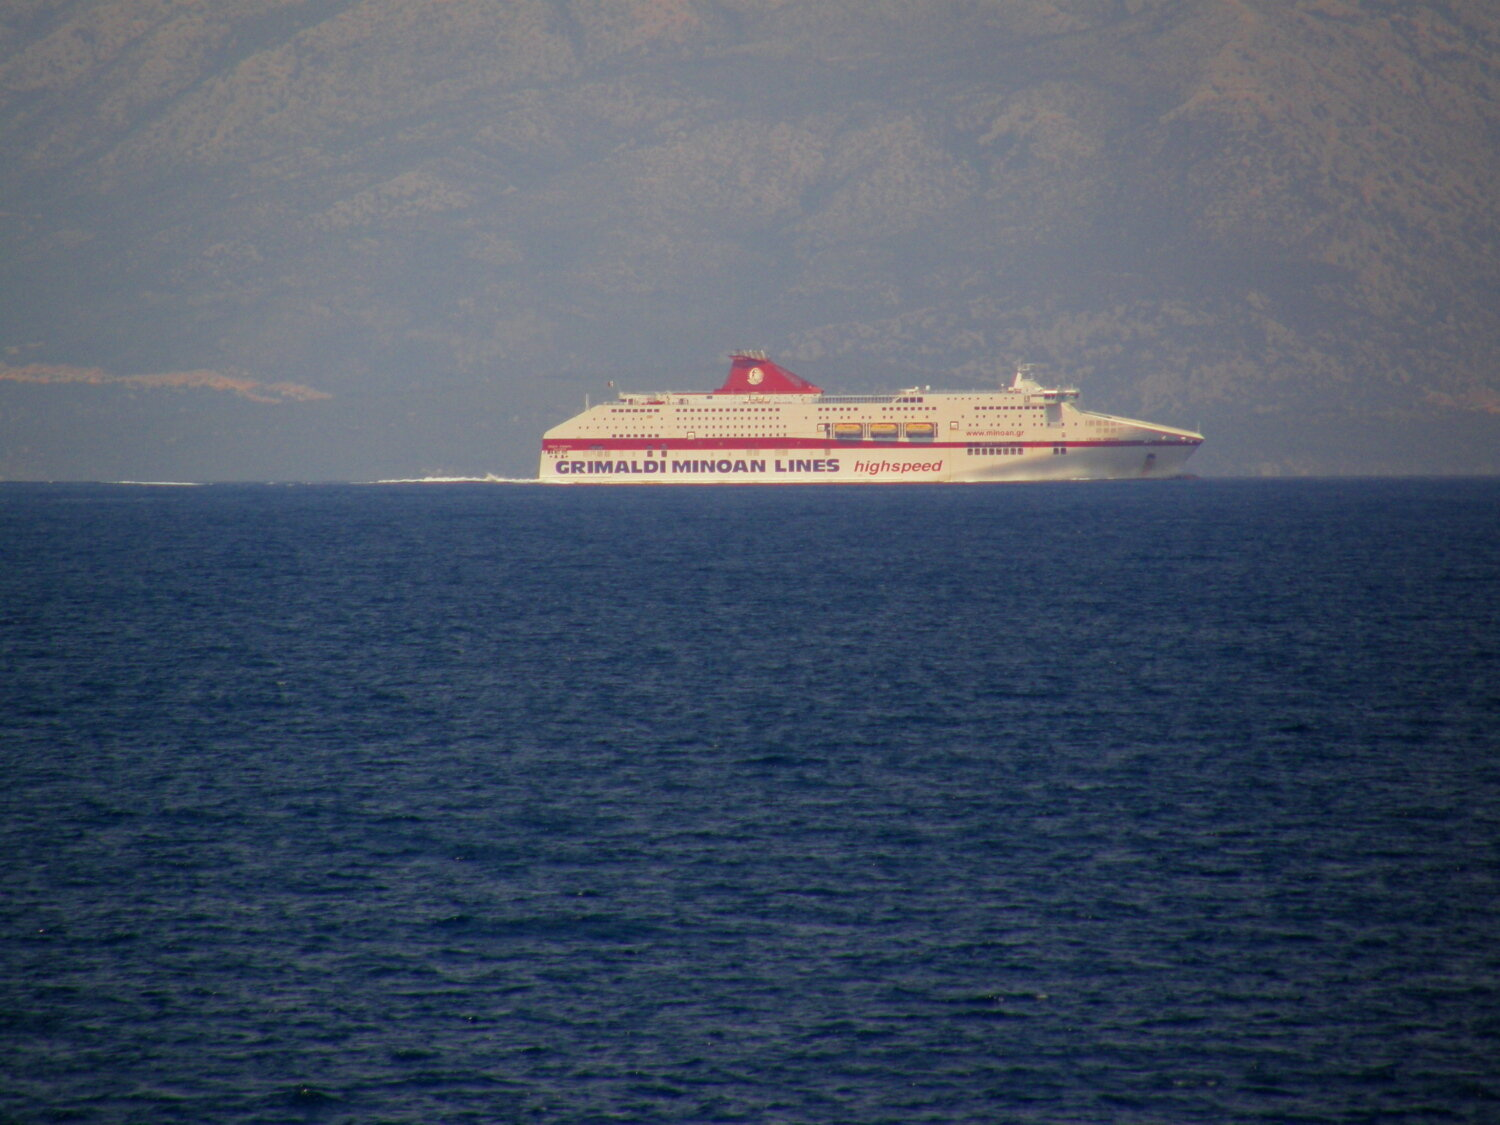 cruise europa off oxies islets patras bound 03082019 a